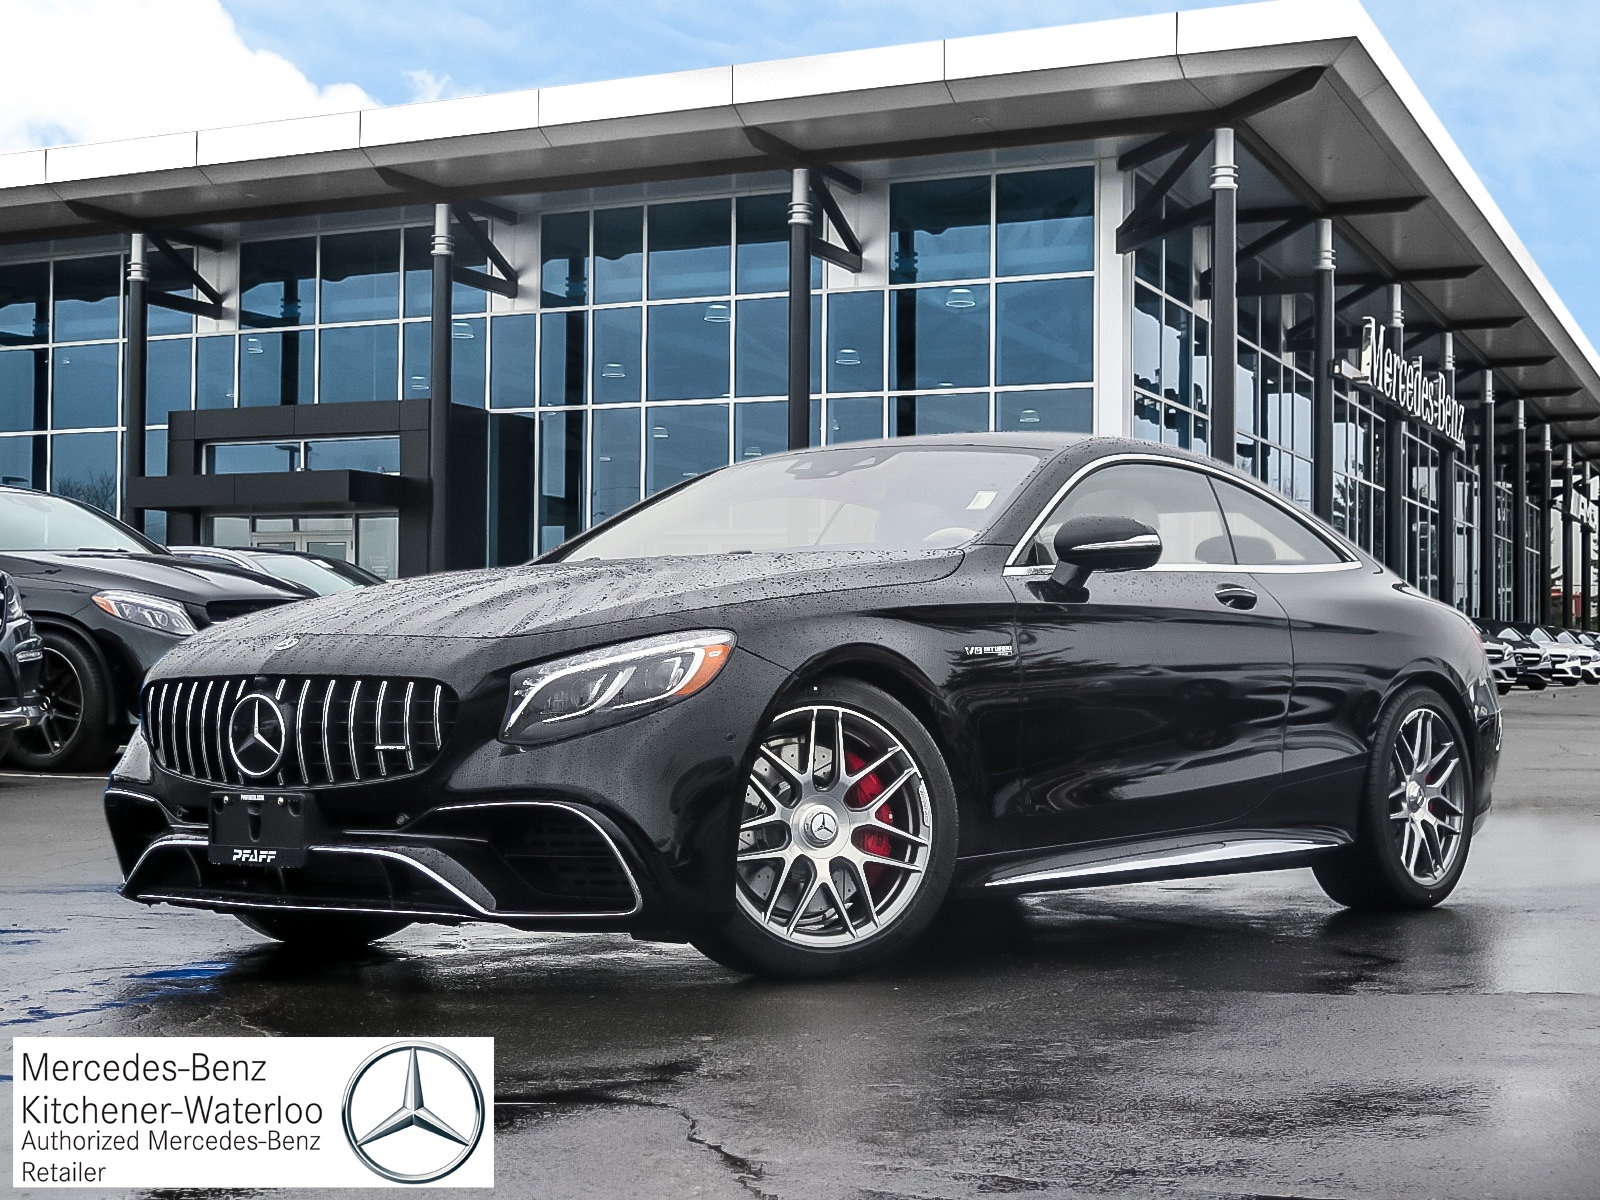 DEMO 2019 Mercedes-Benz S63 AMG 4MATIC+ Coupe